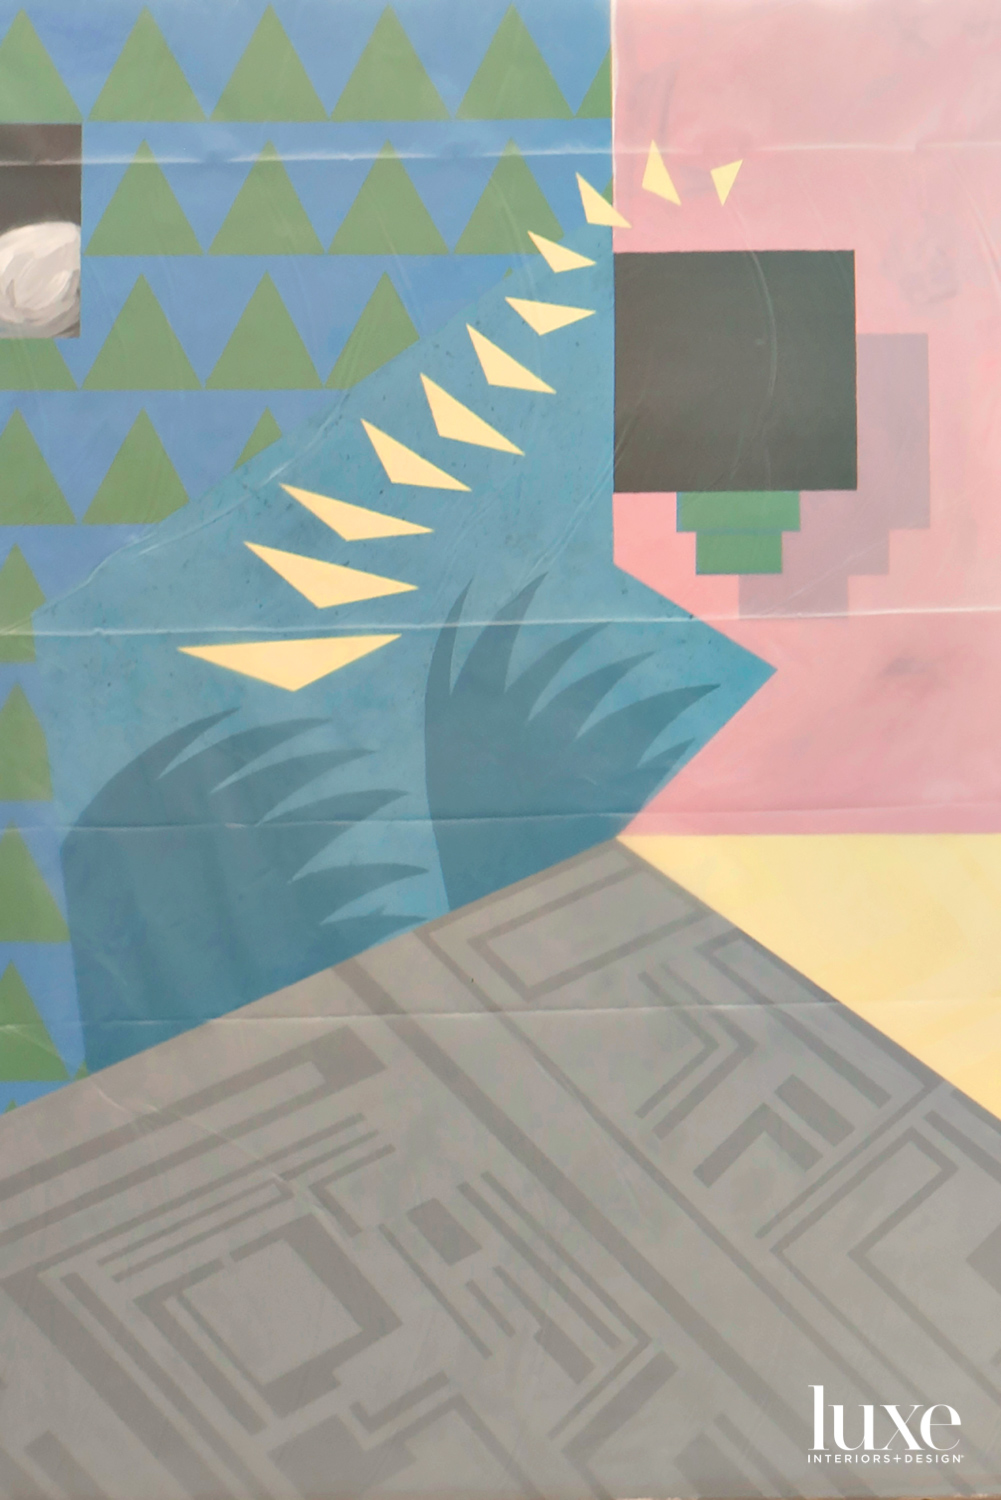 A detail shot of a pastel painting with various shapes.